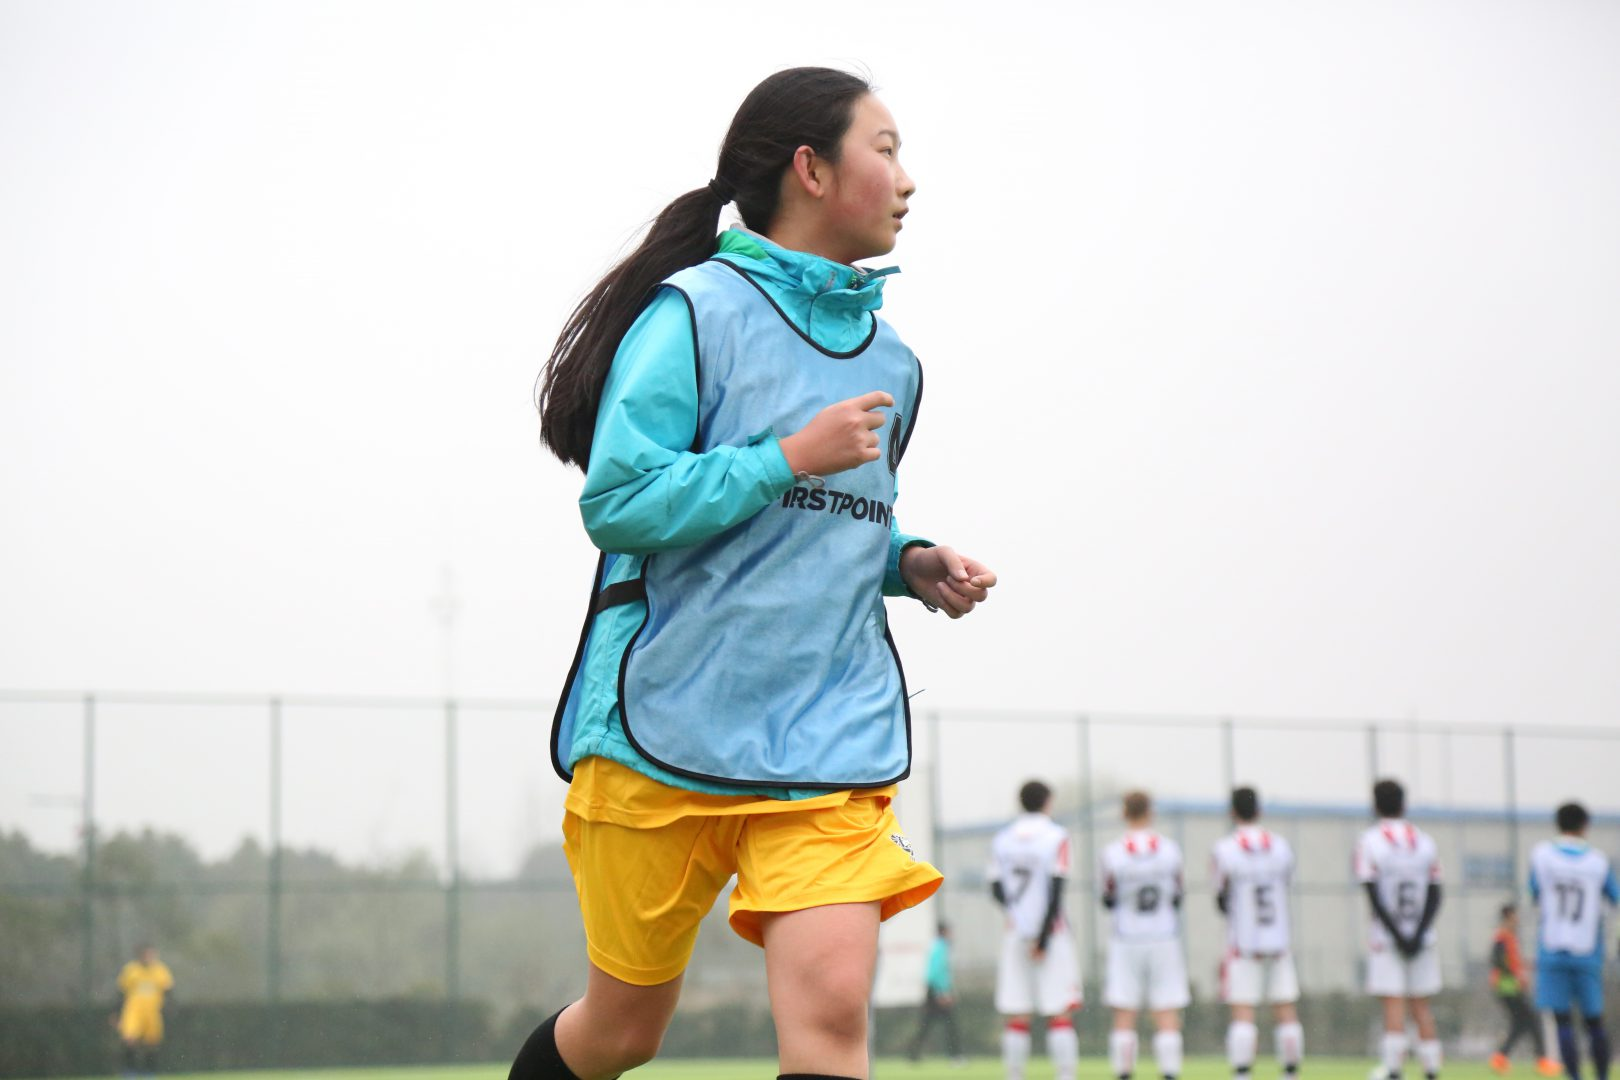 Football players in the Stoke City Field at The Western International School of Shanghai (WISS)